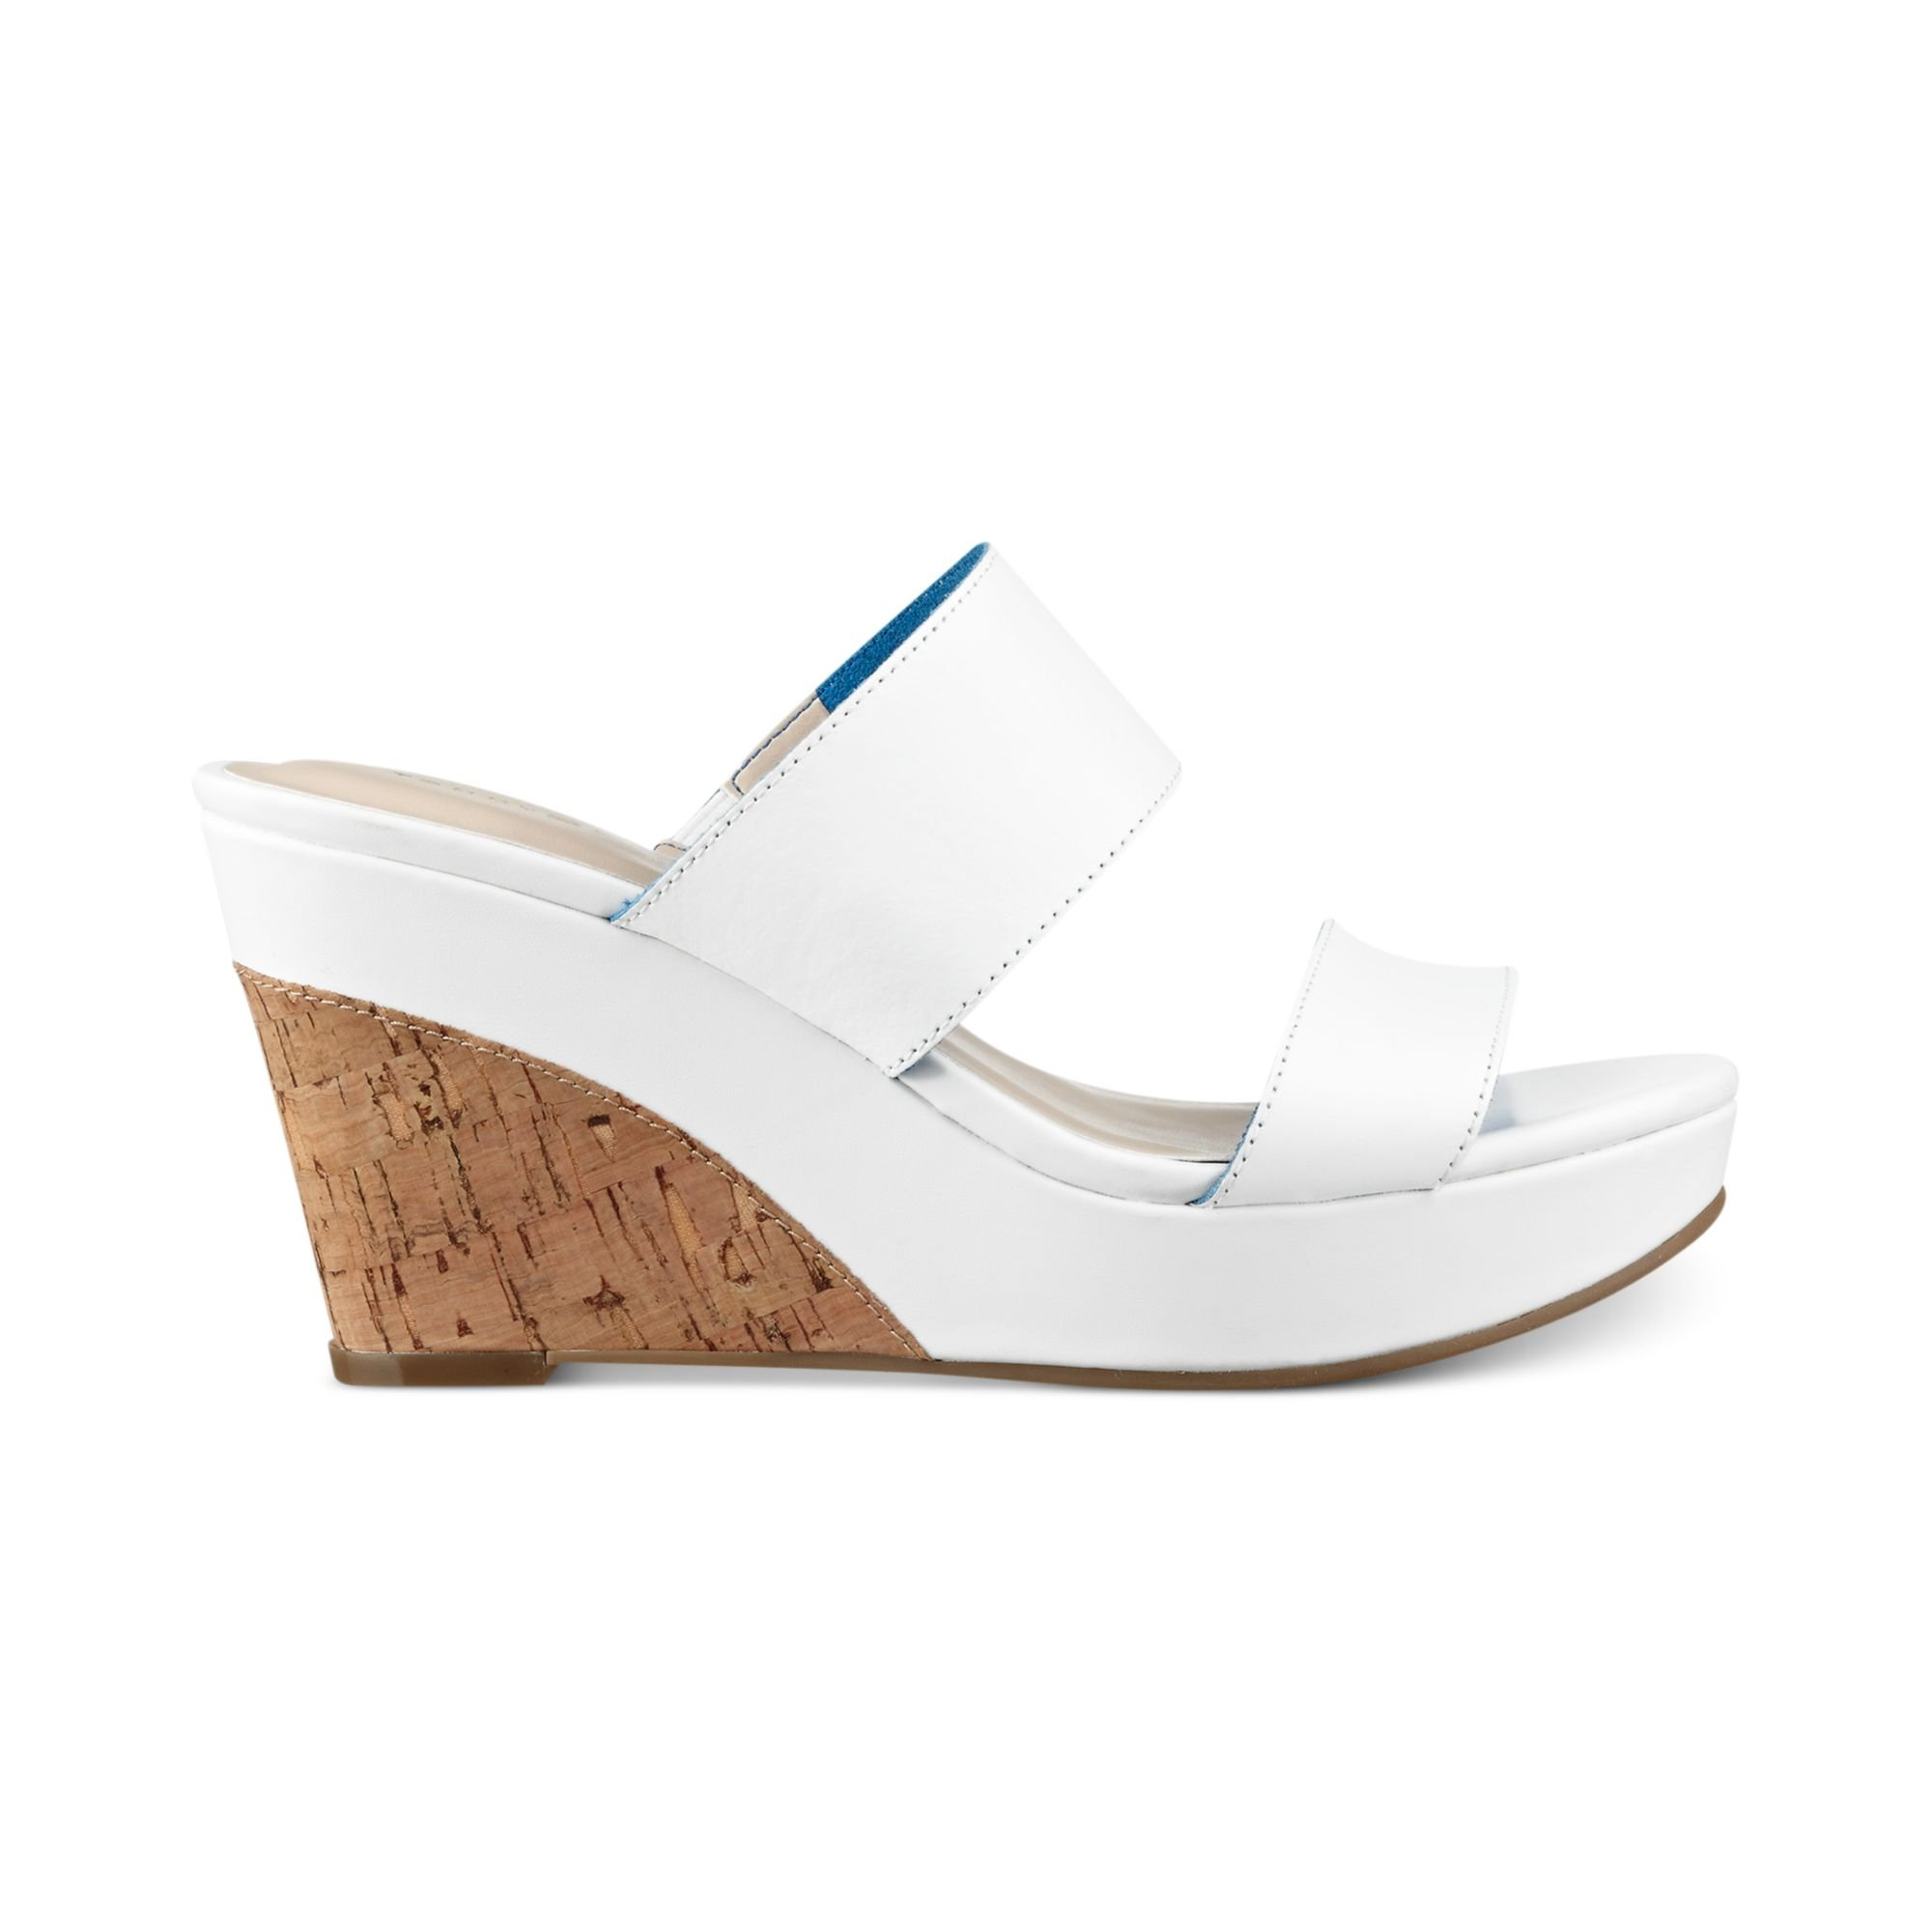 tommy hilfiger kadine platform wedge sandals in white lyst. Black Bedroom Furniture Sets. Home Design Ideas